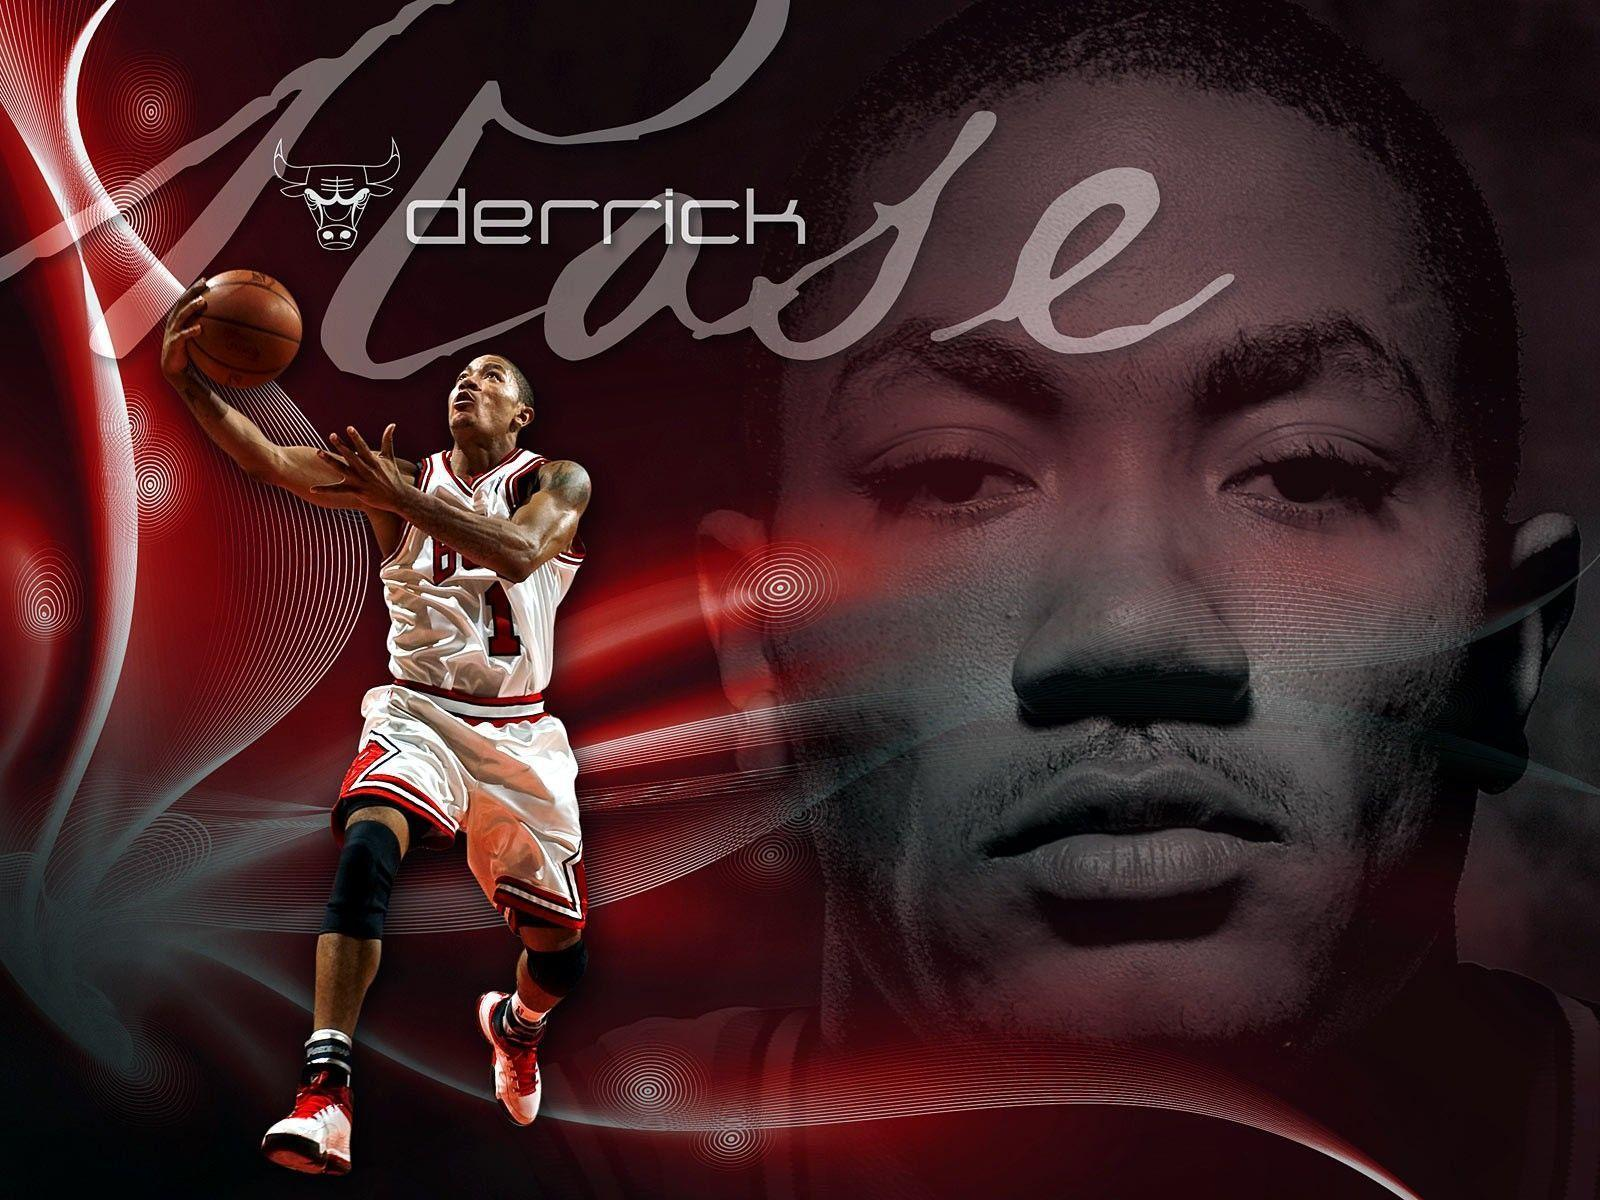 Derrick Rose Pictures 5 HD Wallpapers